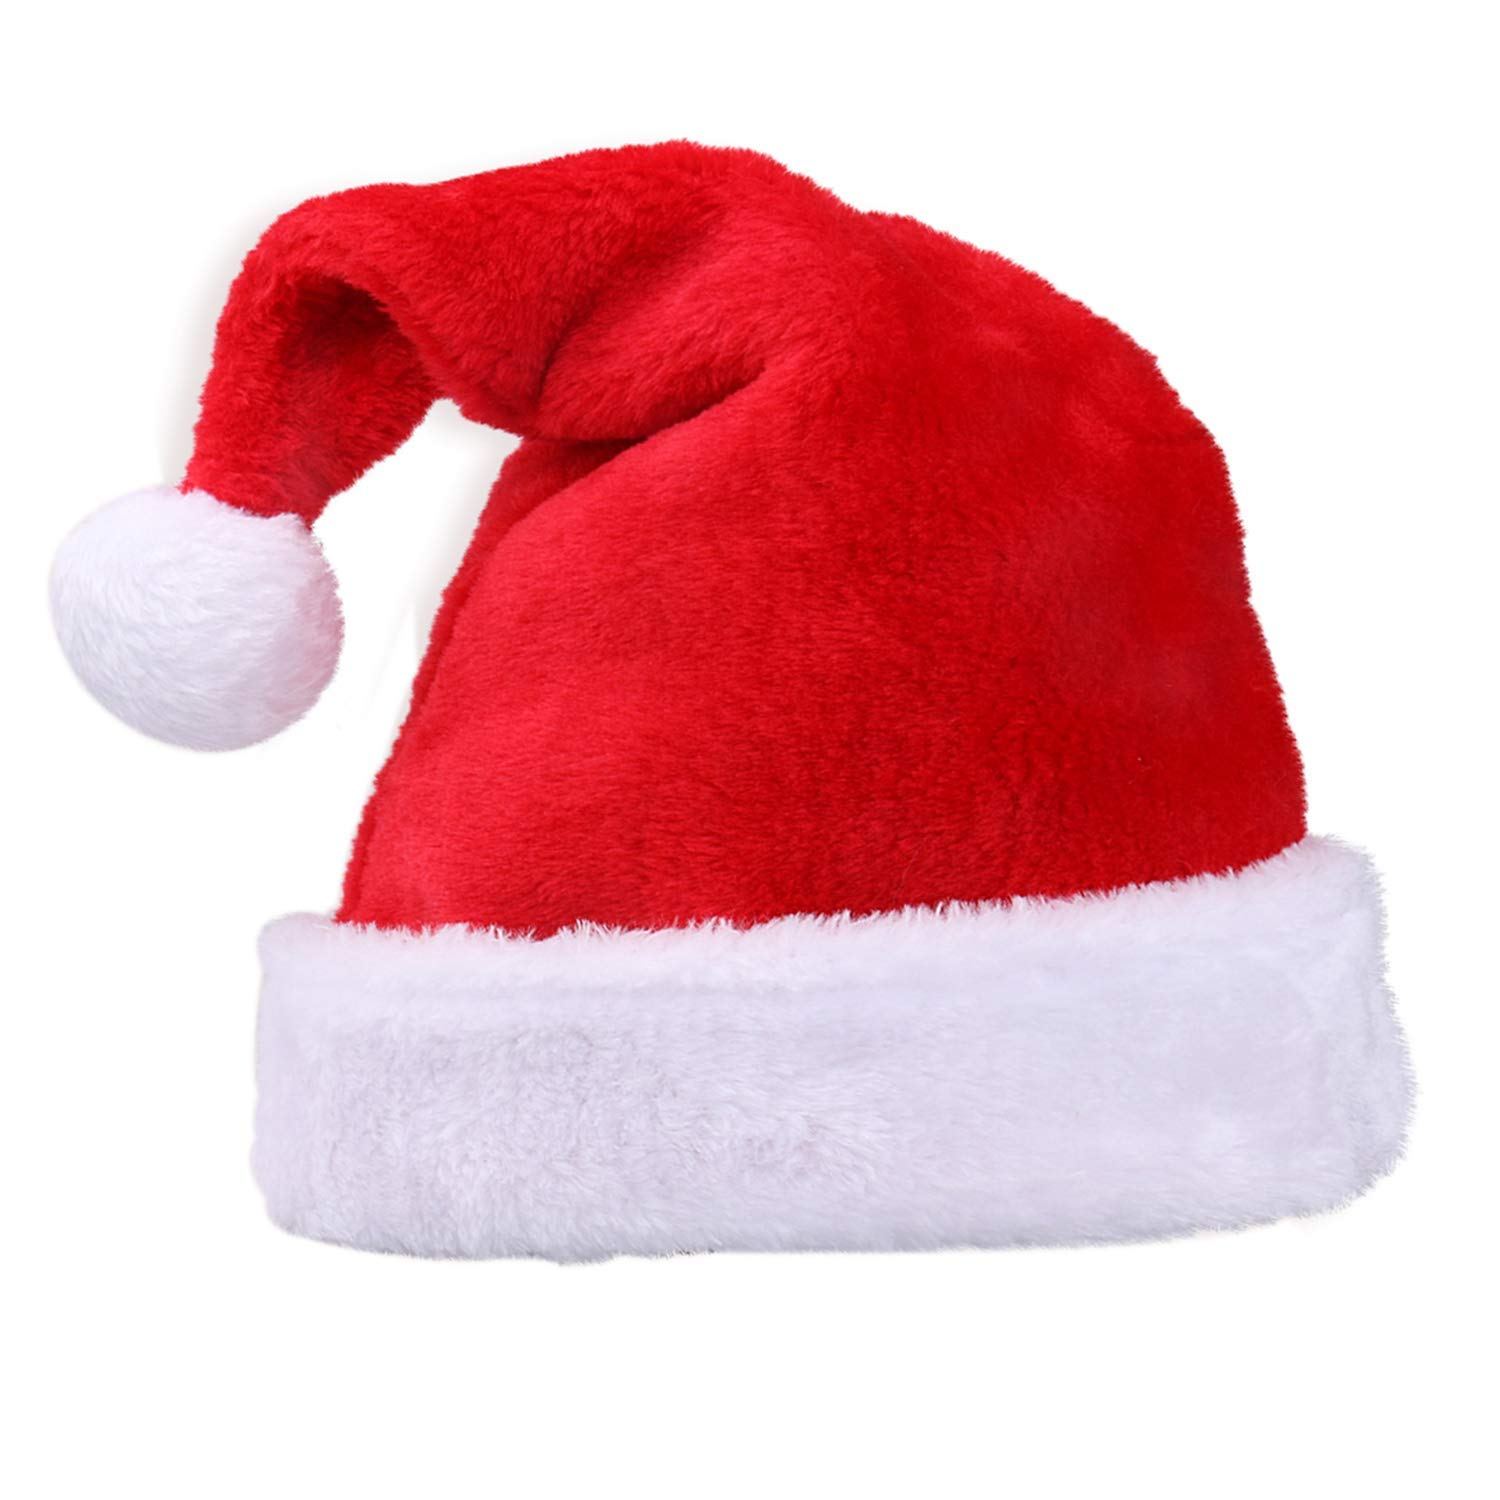 7aec5b3a70c92 Get Quotations · Christmas Santa Hat Christmas Hats for Adults